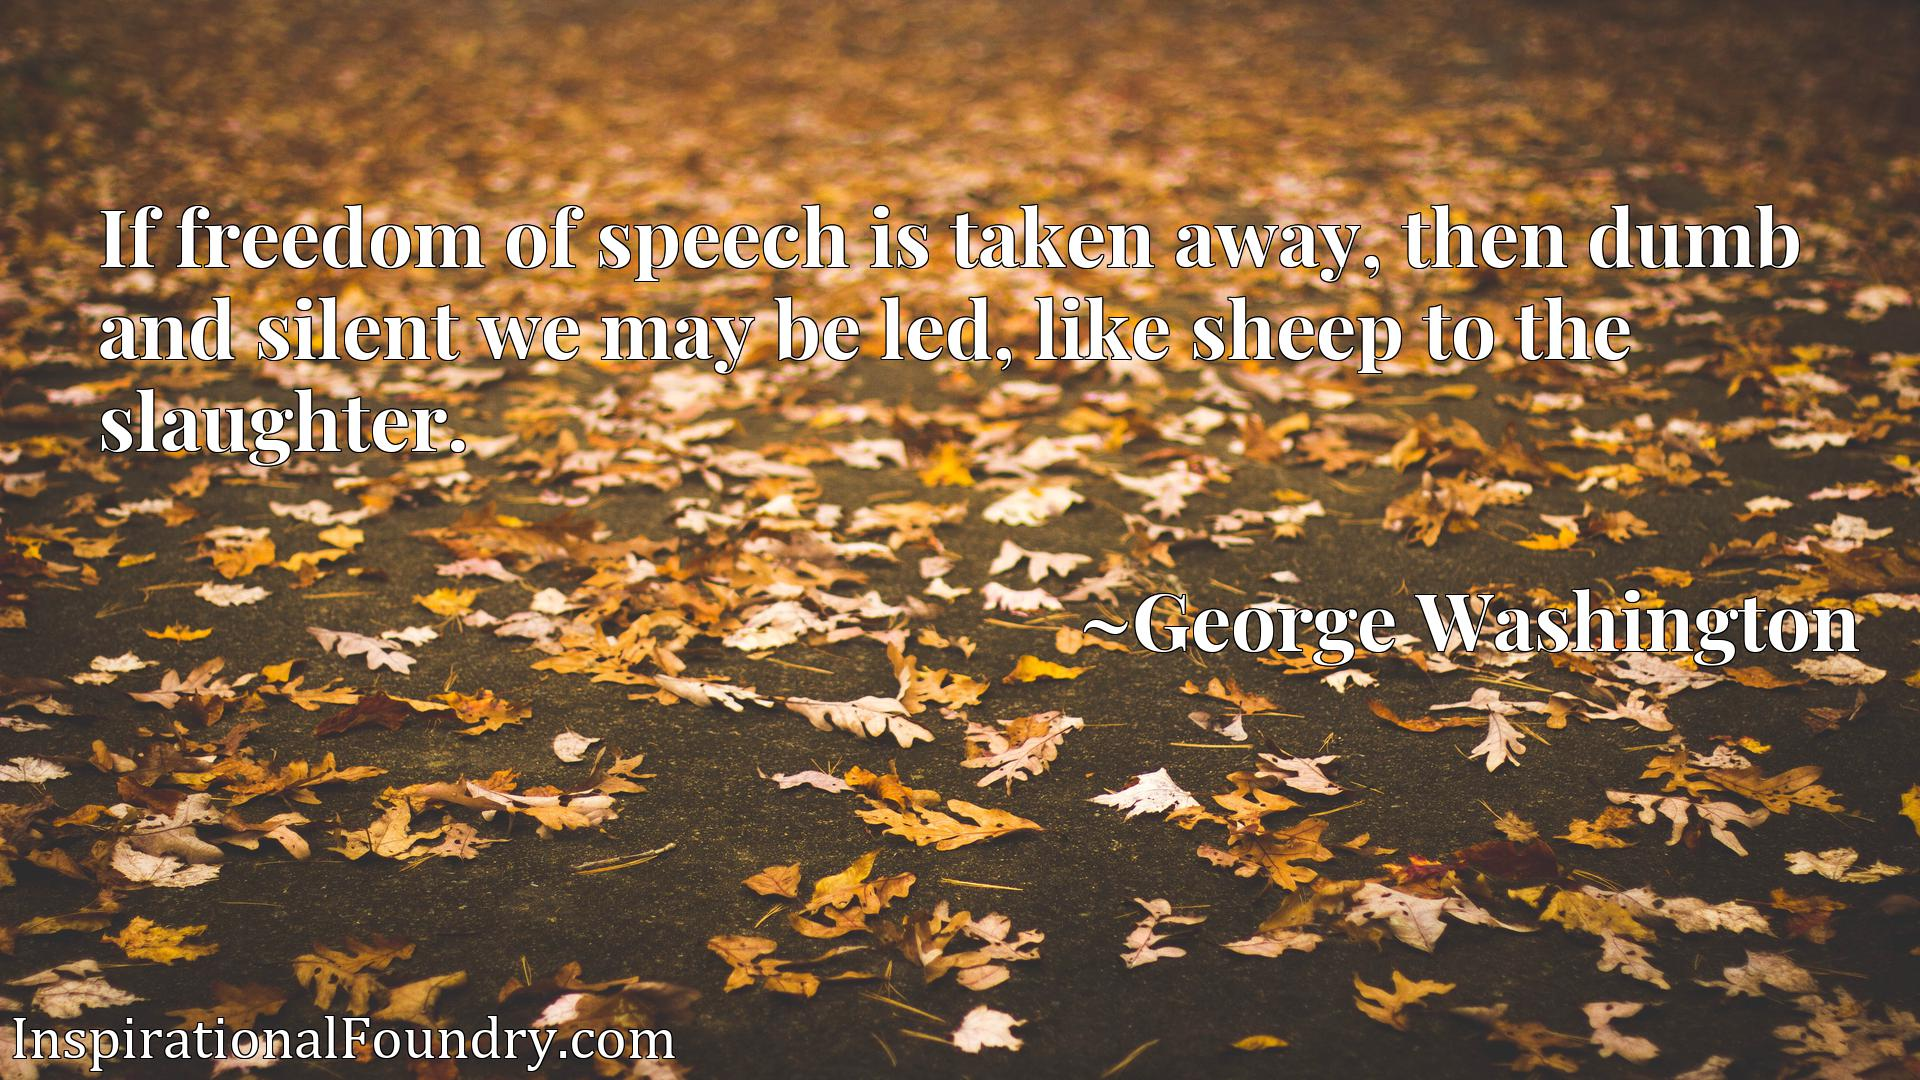 Quote Picture :If freedom of speech is taken away, then dumb and silent we may be led, like sheep to the slaughter.